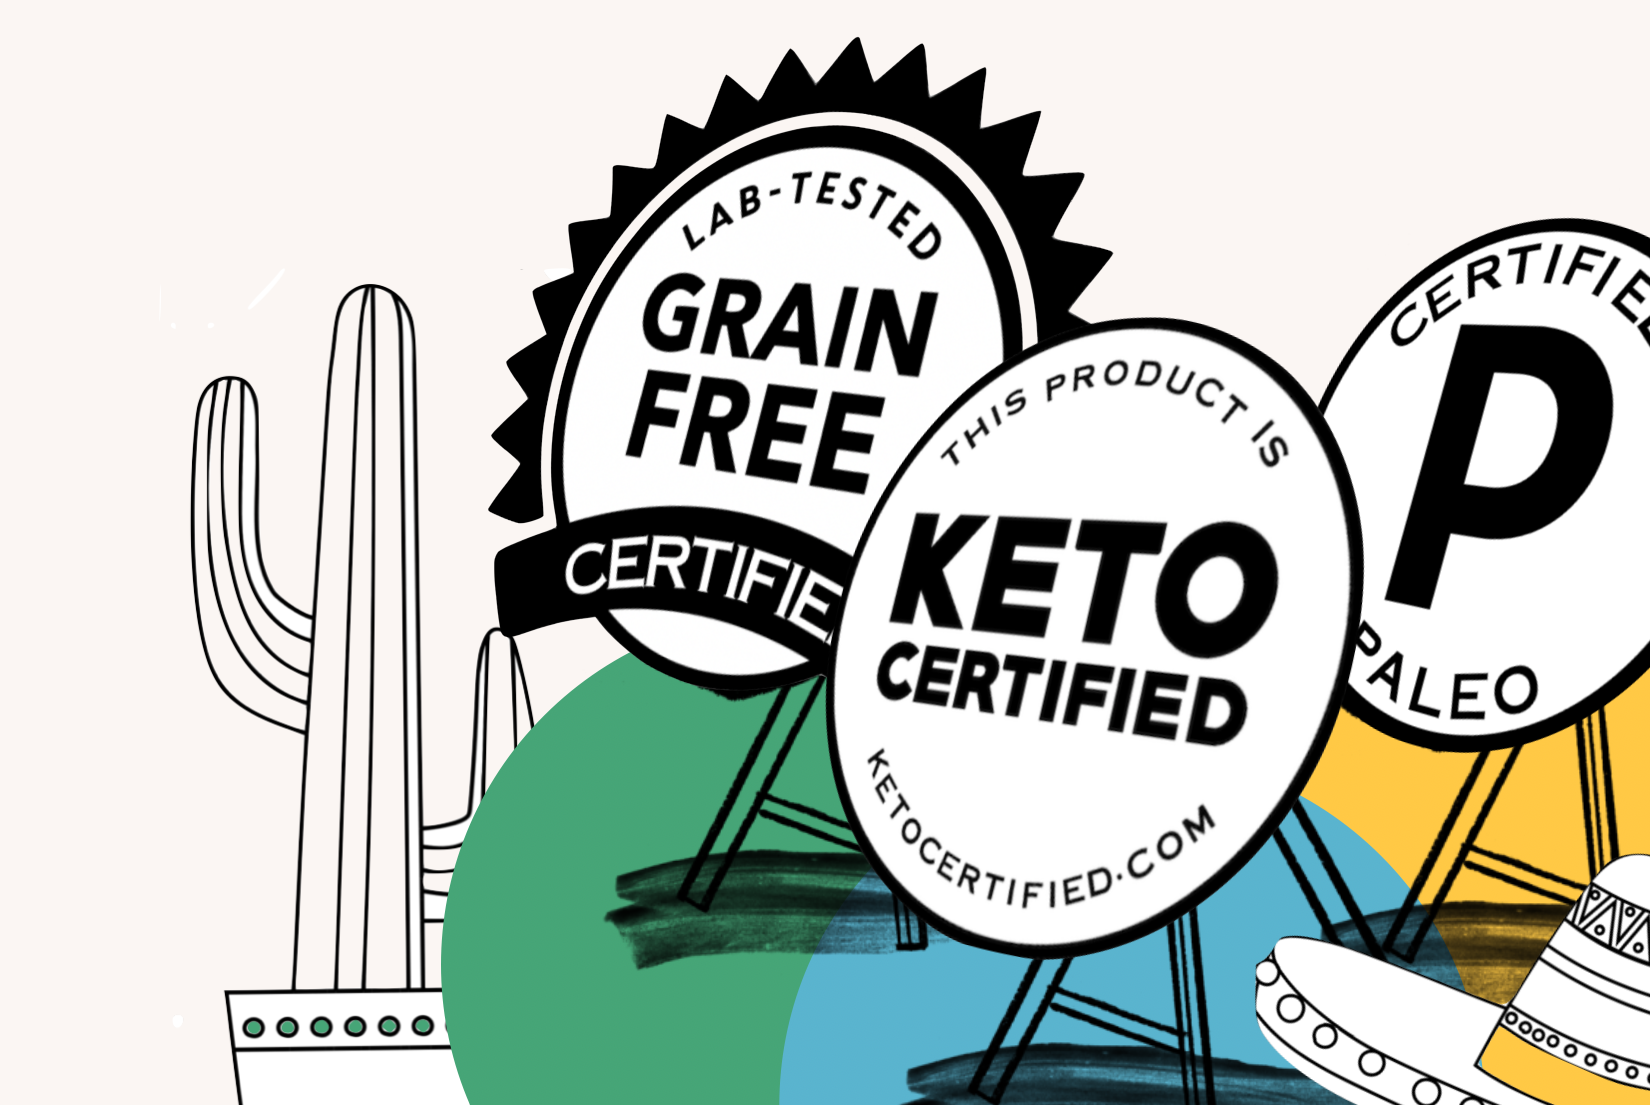 Grain-Free, Paleo, Keto Certification